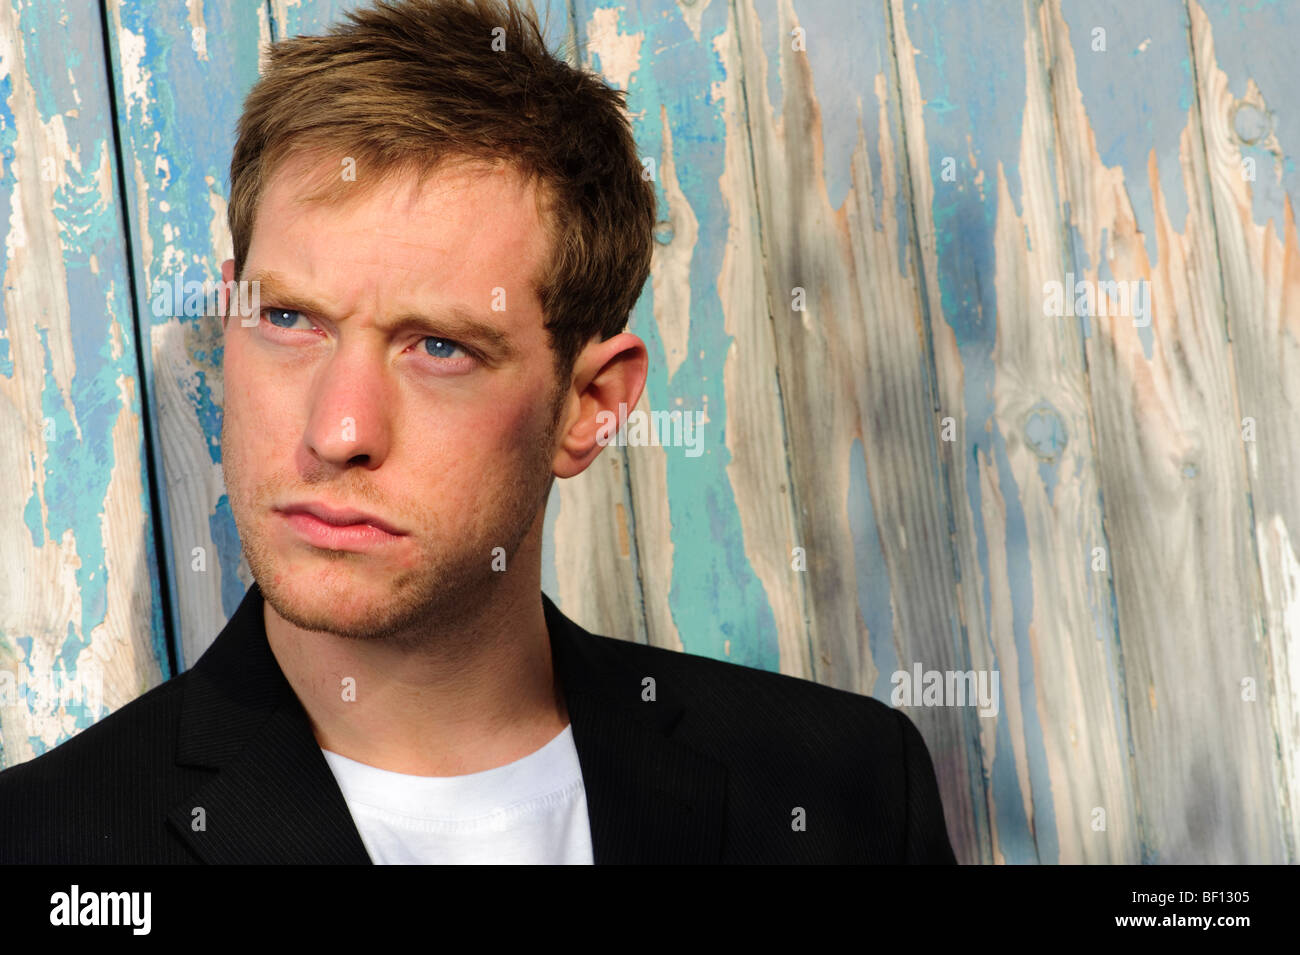 blue-eyed 30 year old man alone in front of peeling painted wooden door - looking away from the camera - Stock Image